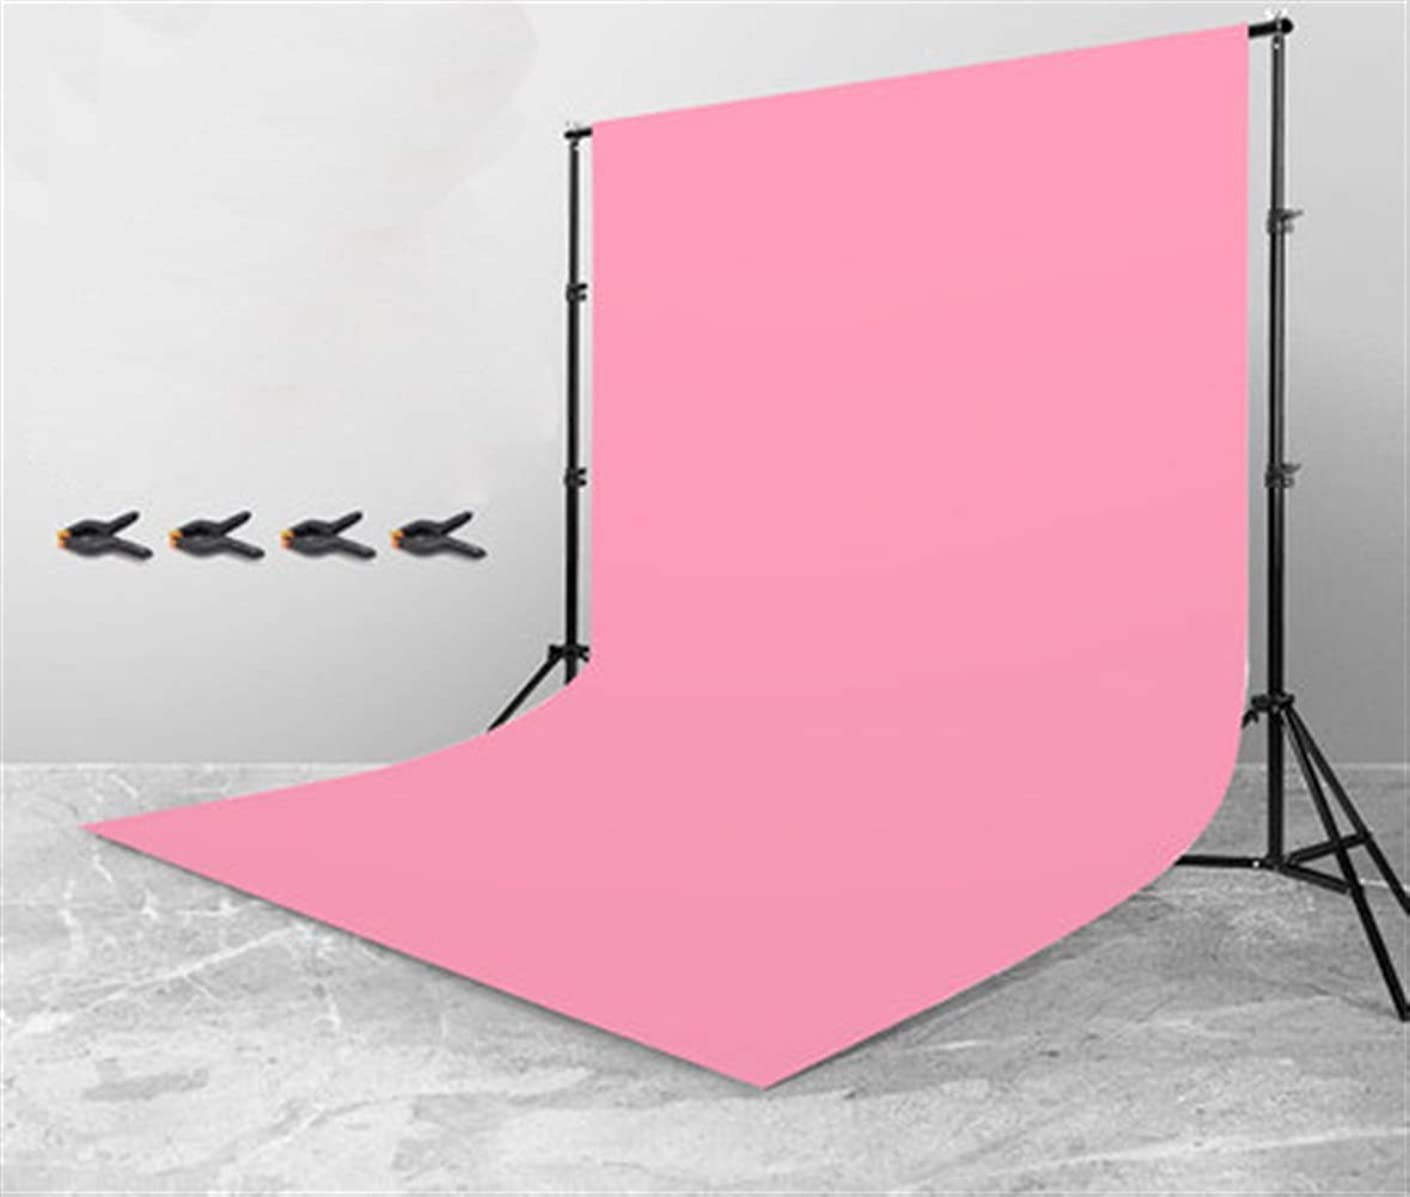 Icegrey Net Red Photo Convenient Props Bracket and Background Cloth Pink 5.2x6.6ft